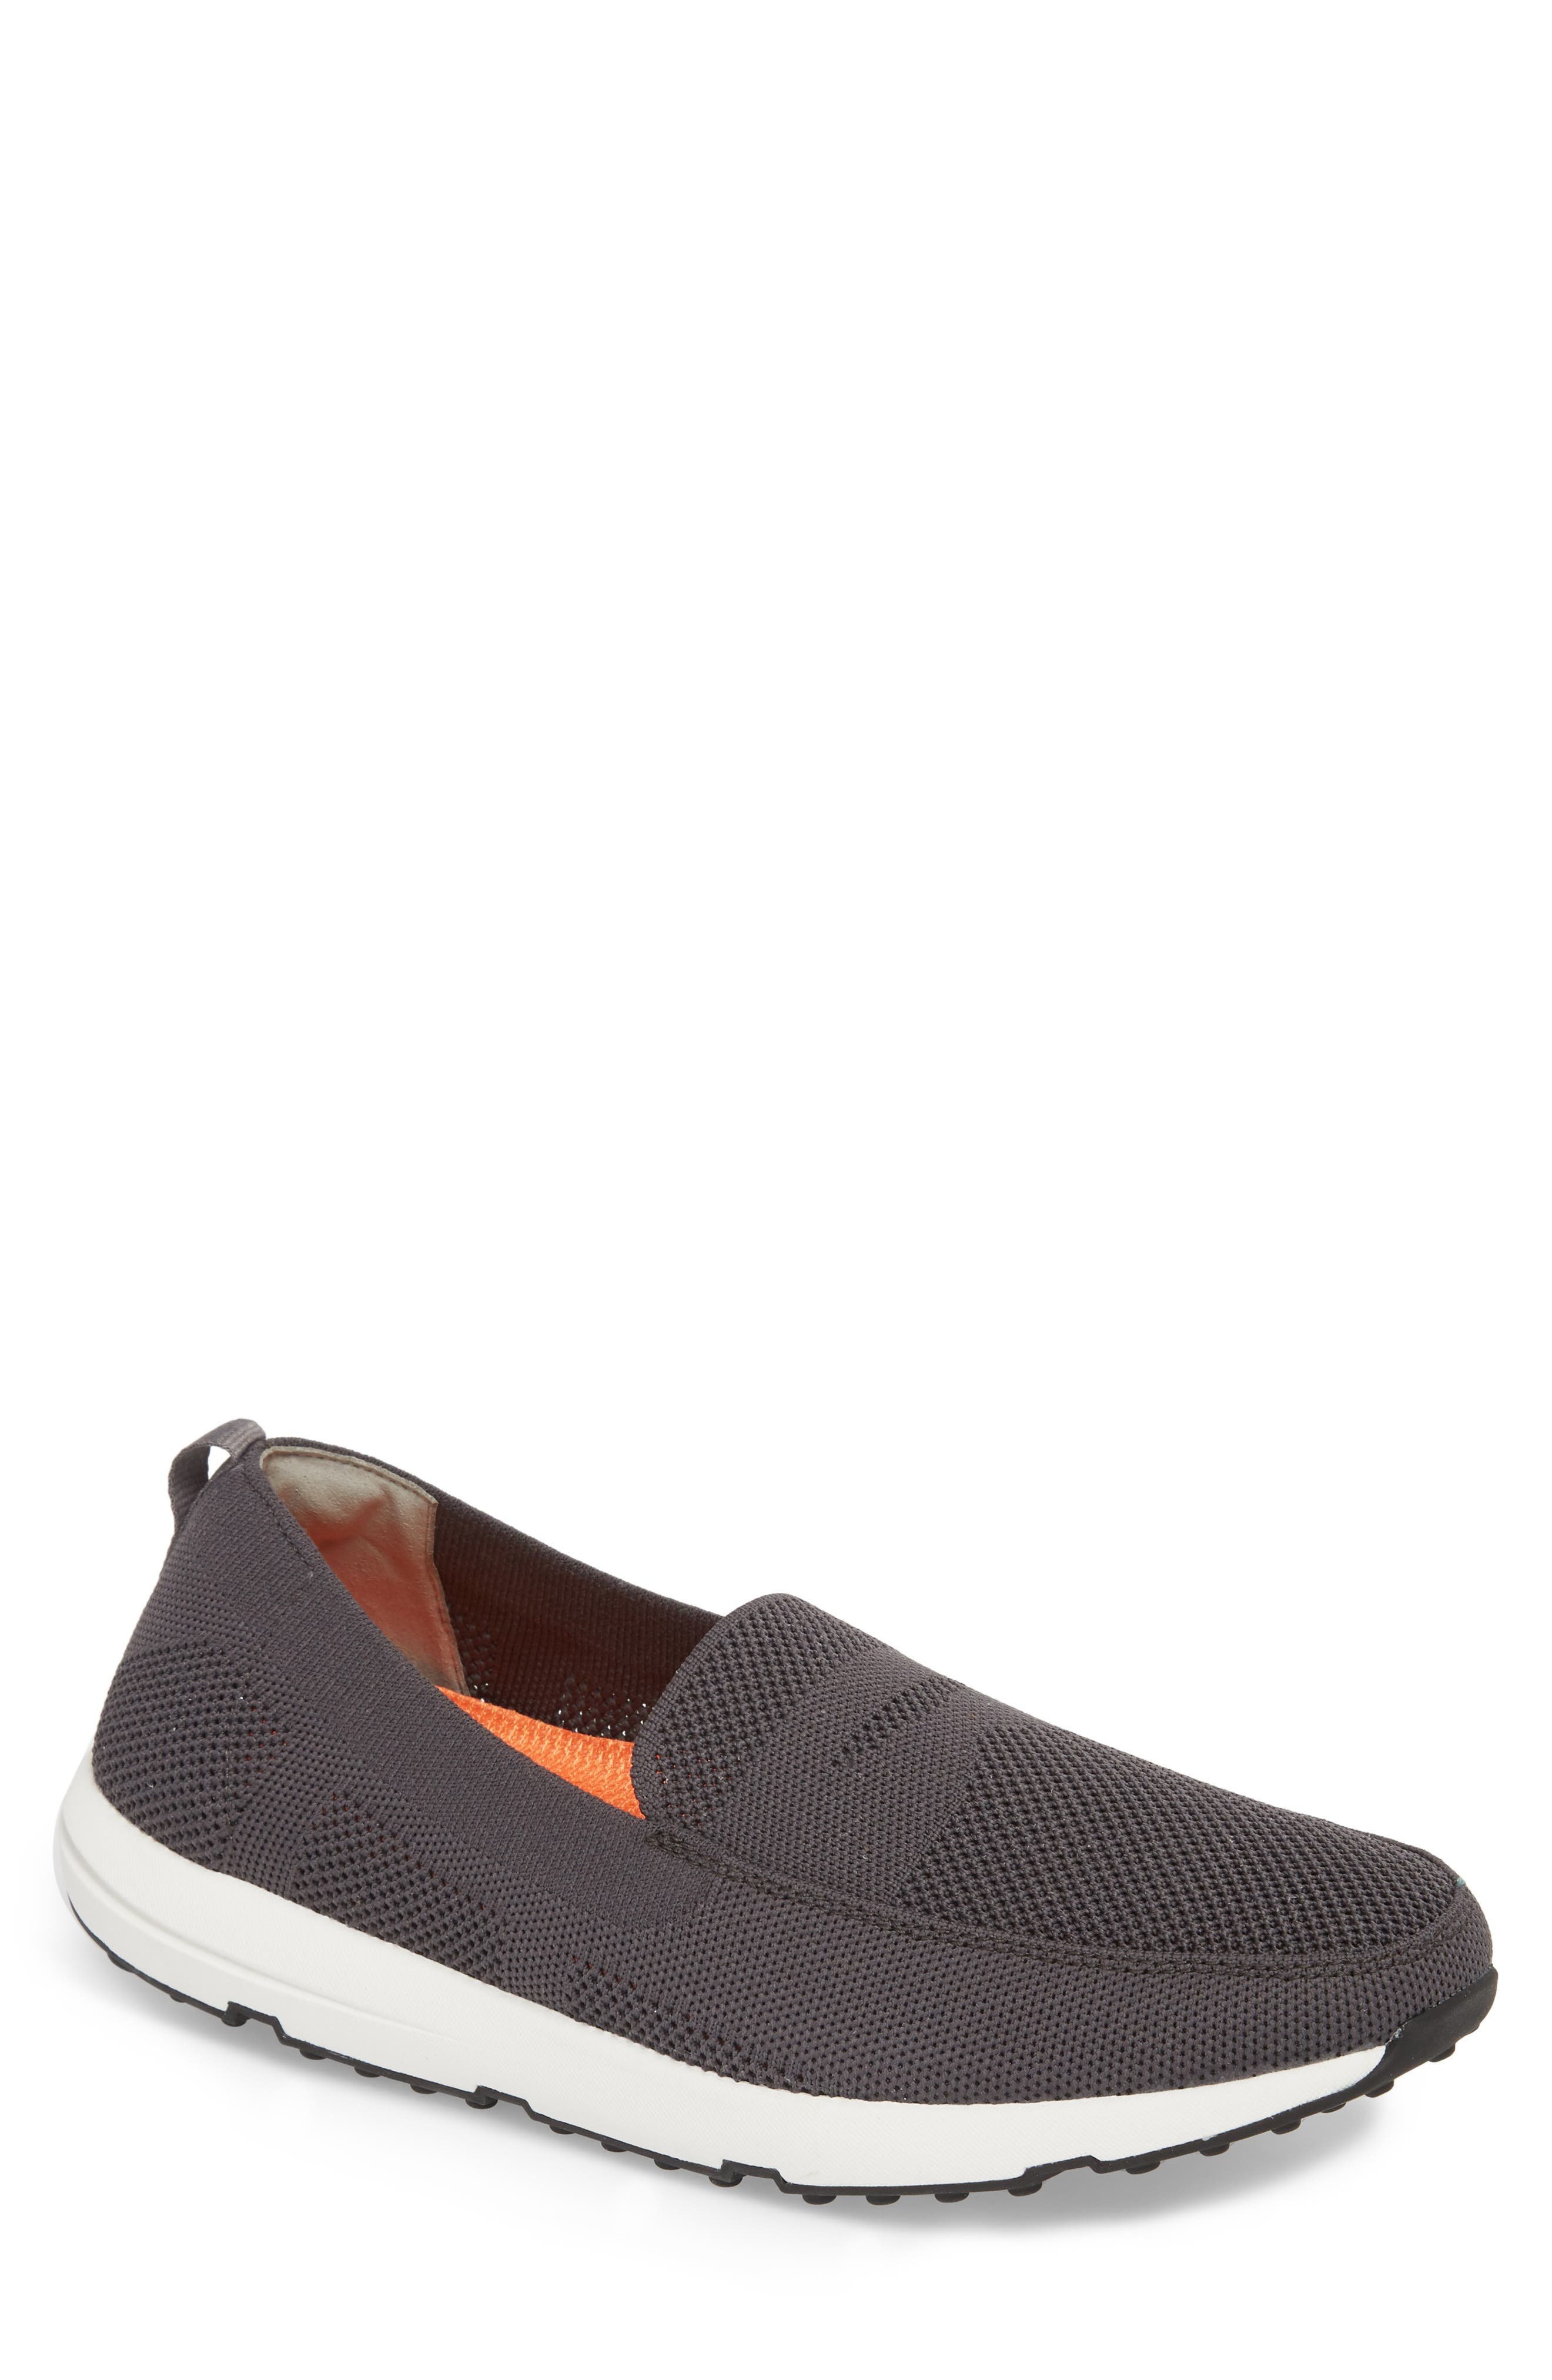 SWIMS Breeze Leap Knit Penny Slip-On, Main, color, 020